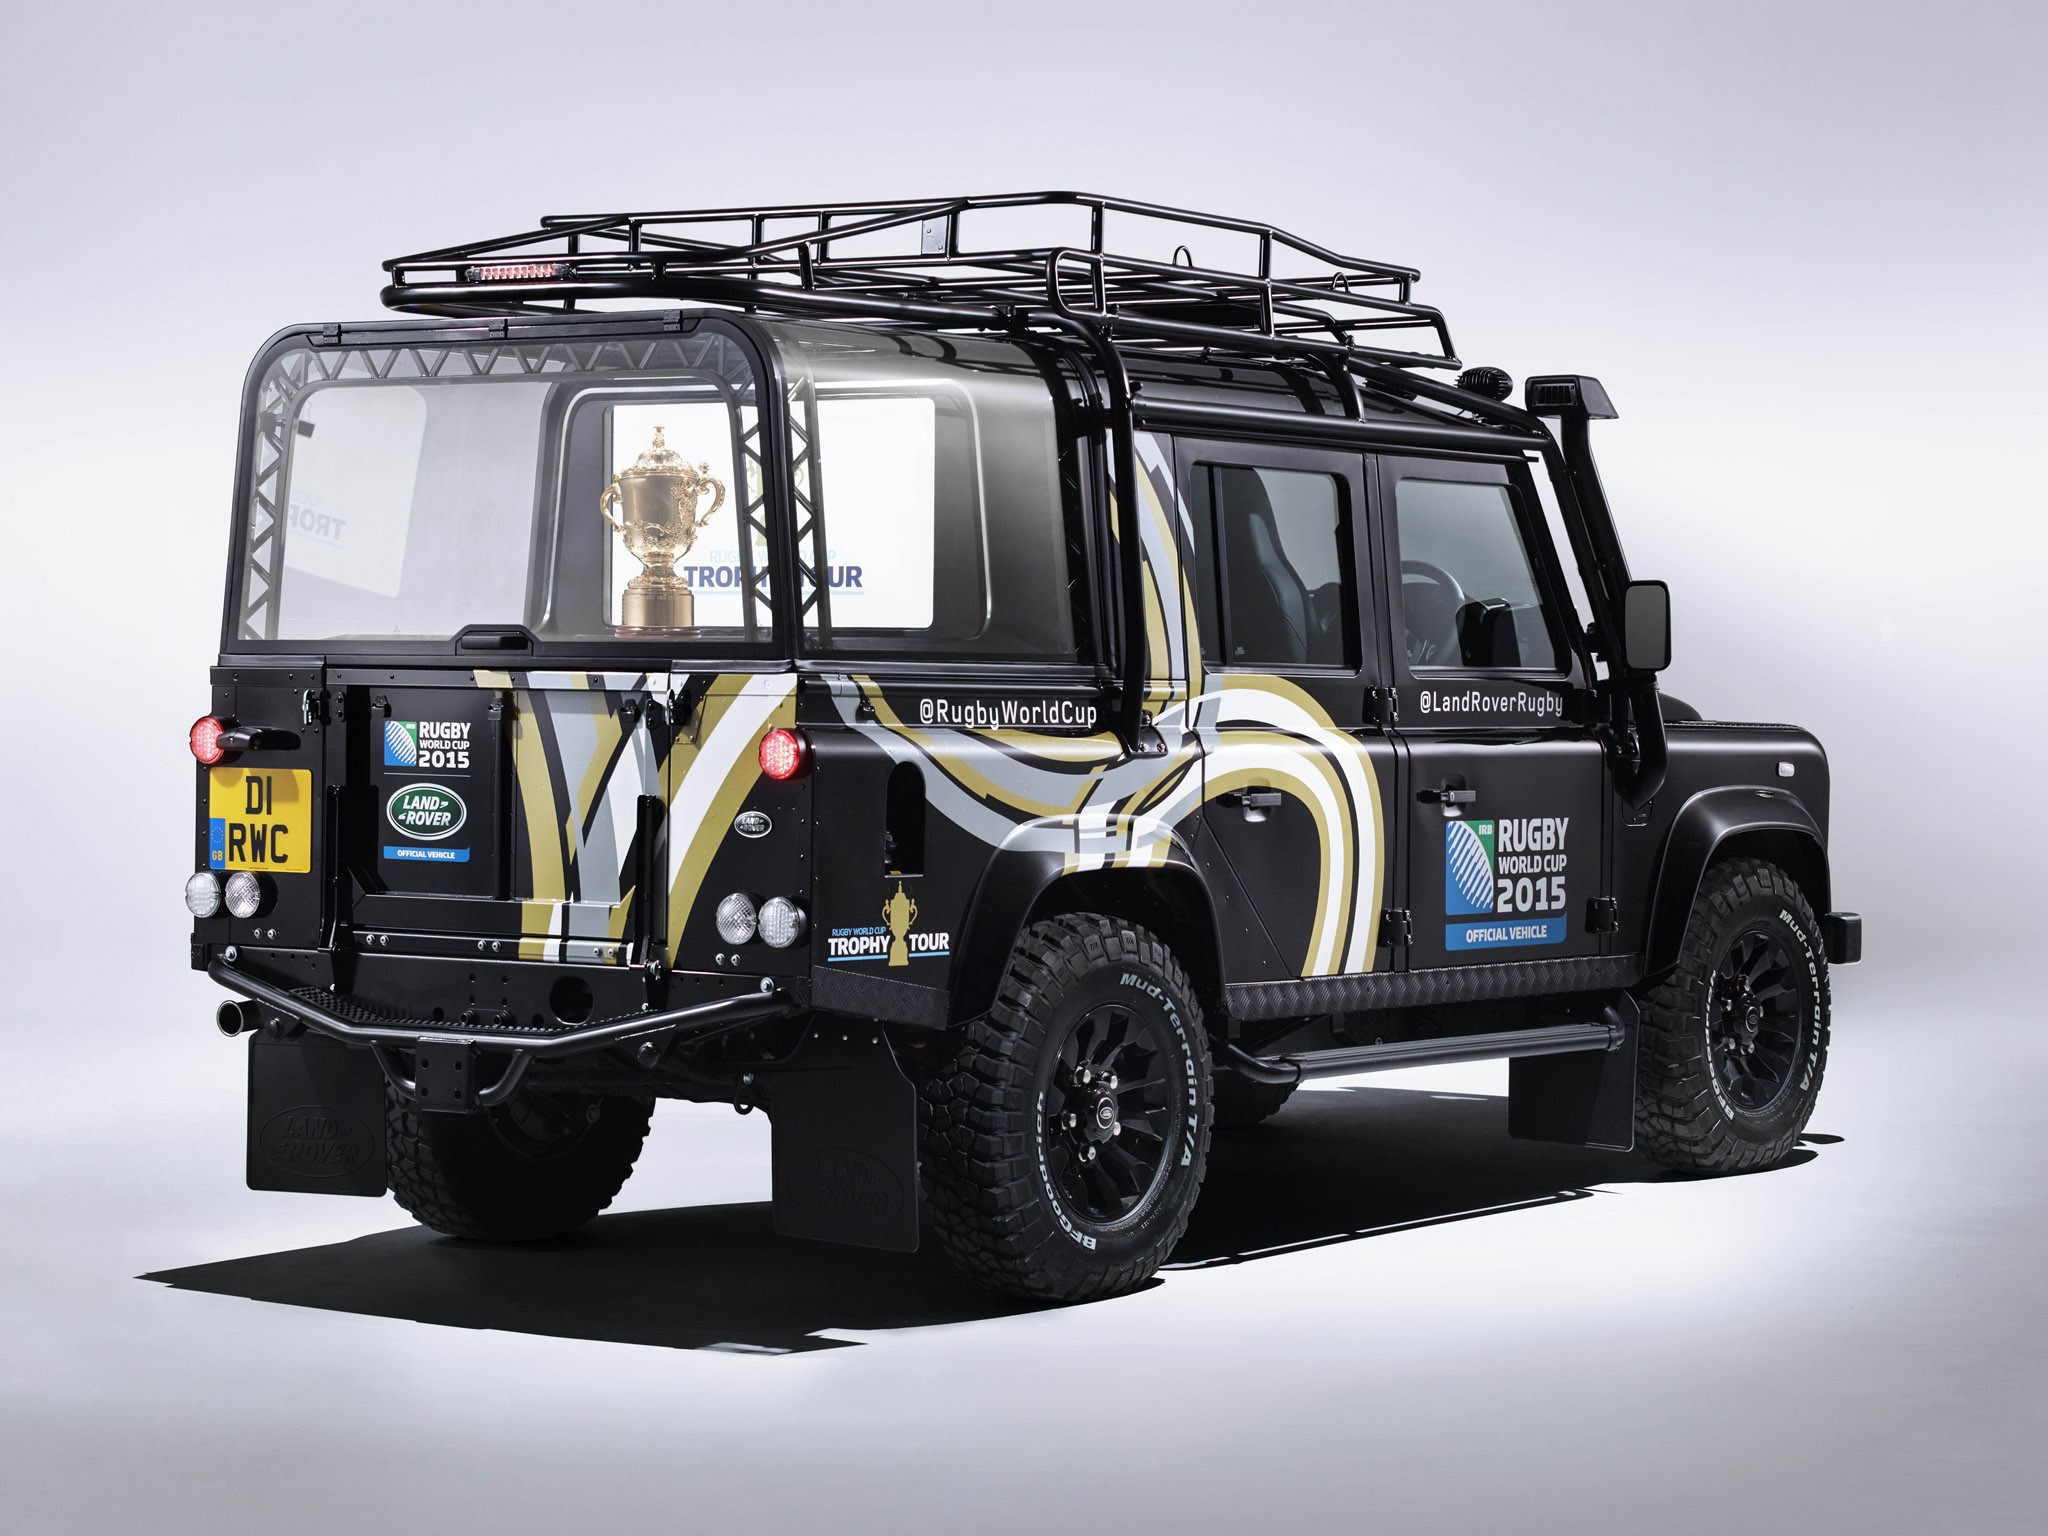 2015 Land Rover Defender 110 Rugby World Cup